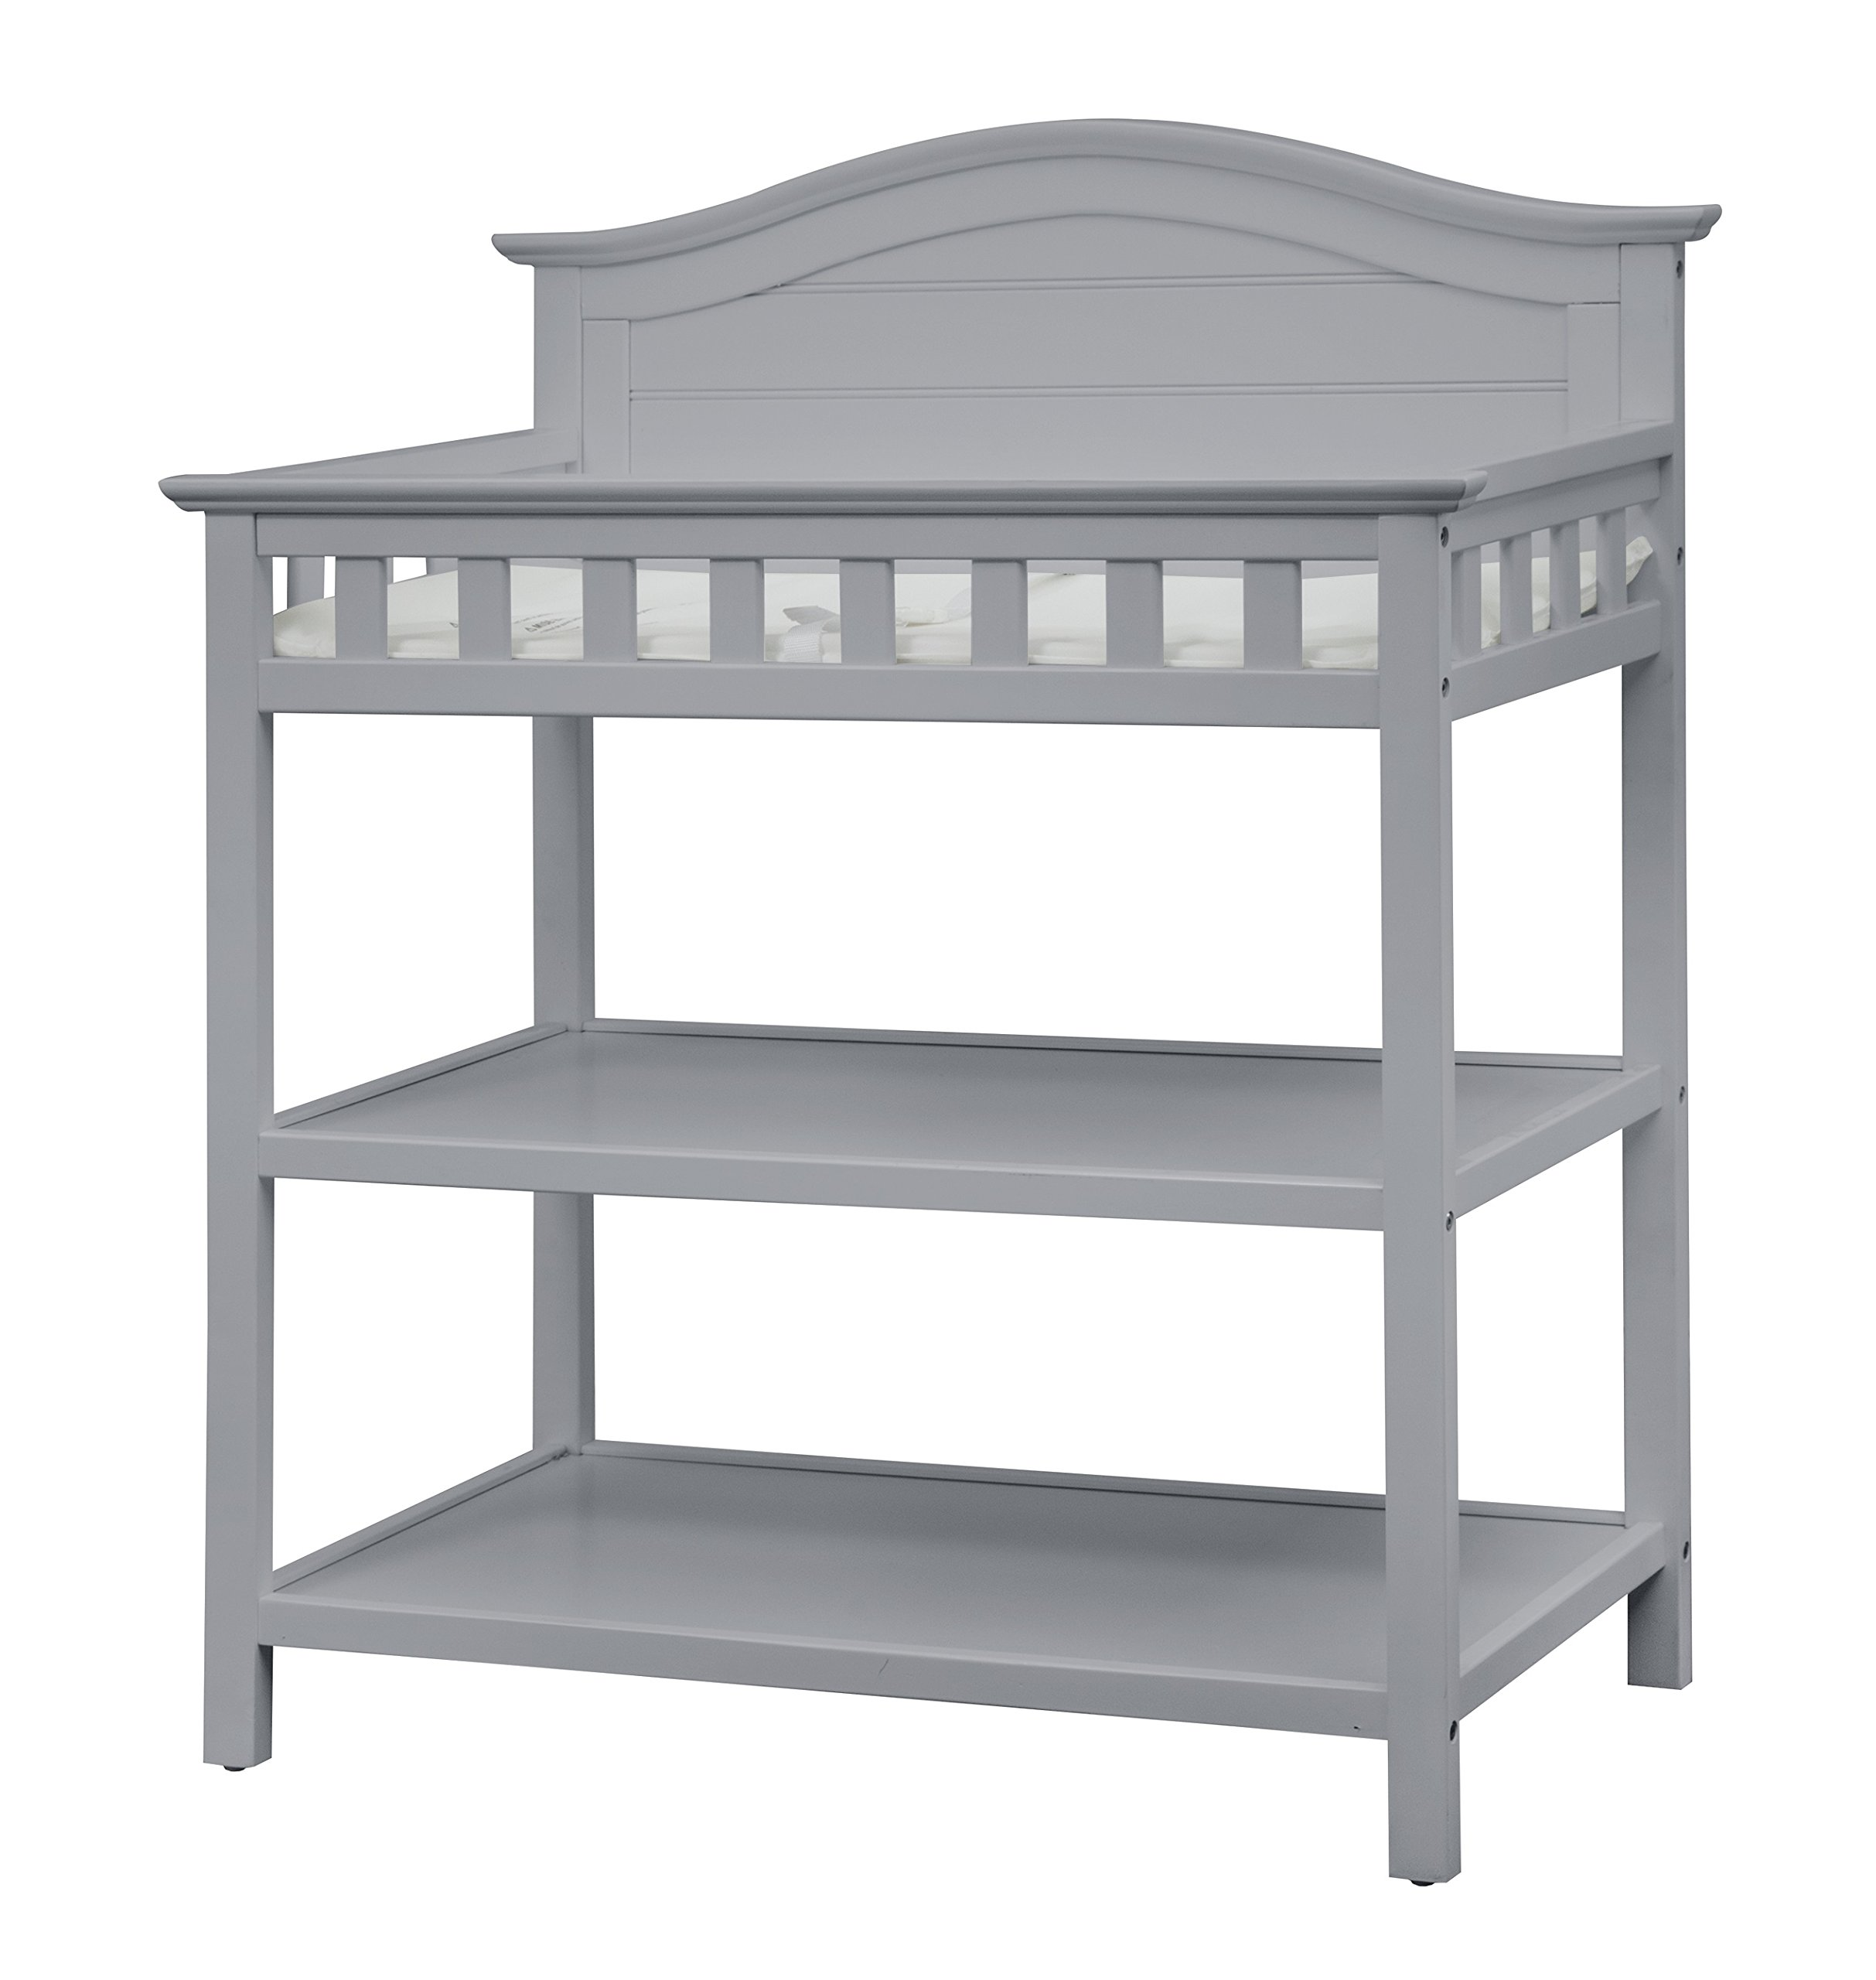 Thomasville Kids Southern Dunes Changing Table, Pebble Gray, Changing Table with Water Resistant Changing Pad, Safety Strap & Two Storage Shelves, for Infants & Toddlers by Storkcraft